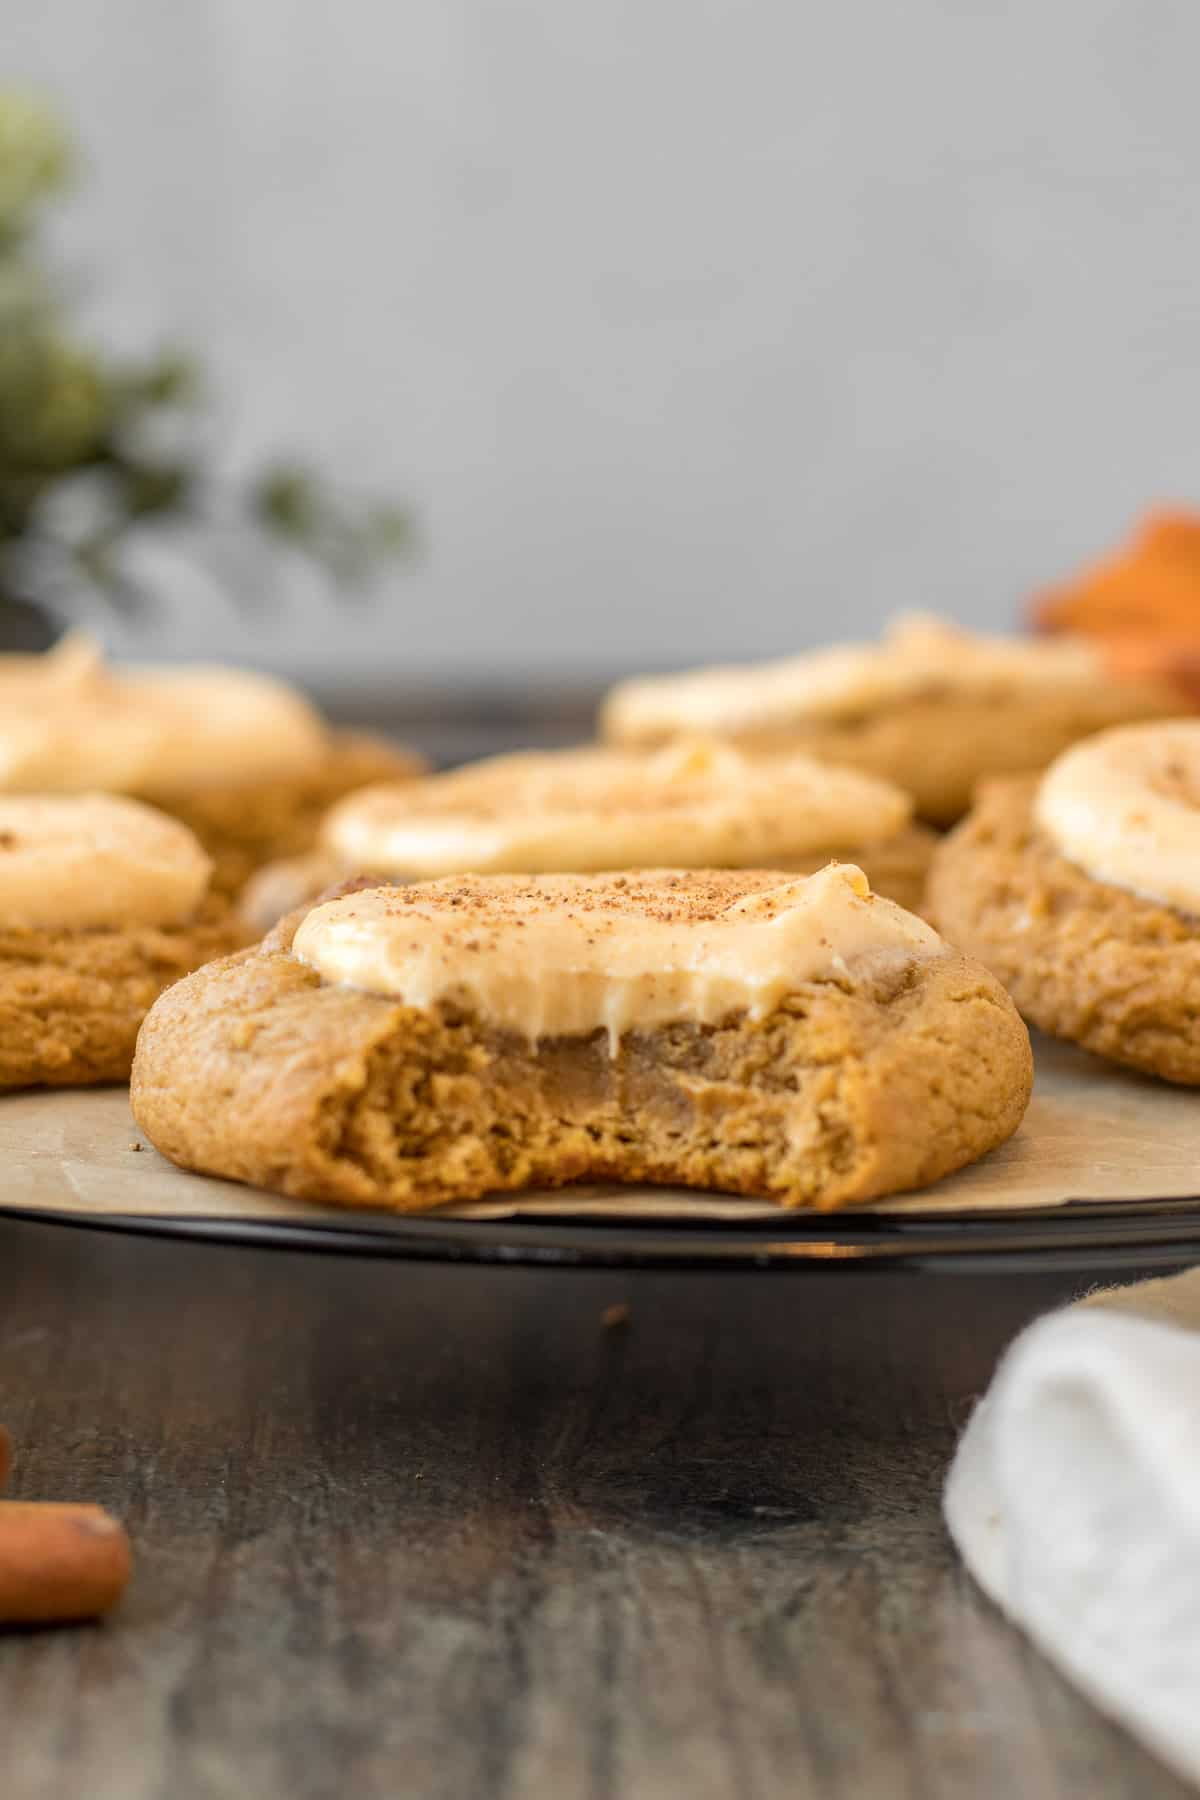 close up view of a pumpkin cookie with cheesecake filling with a bite out of it